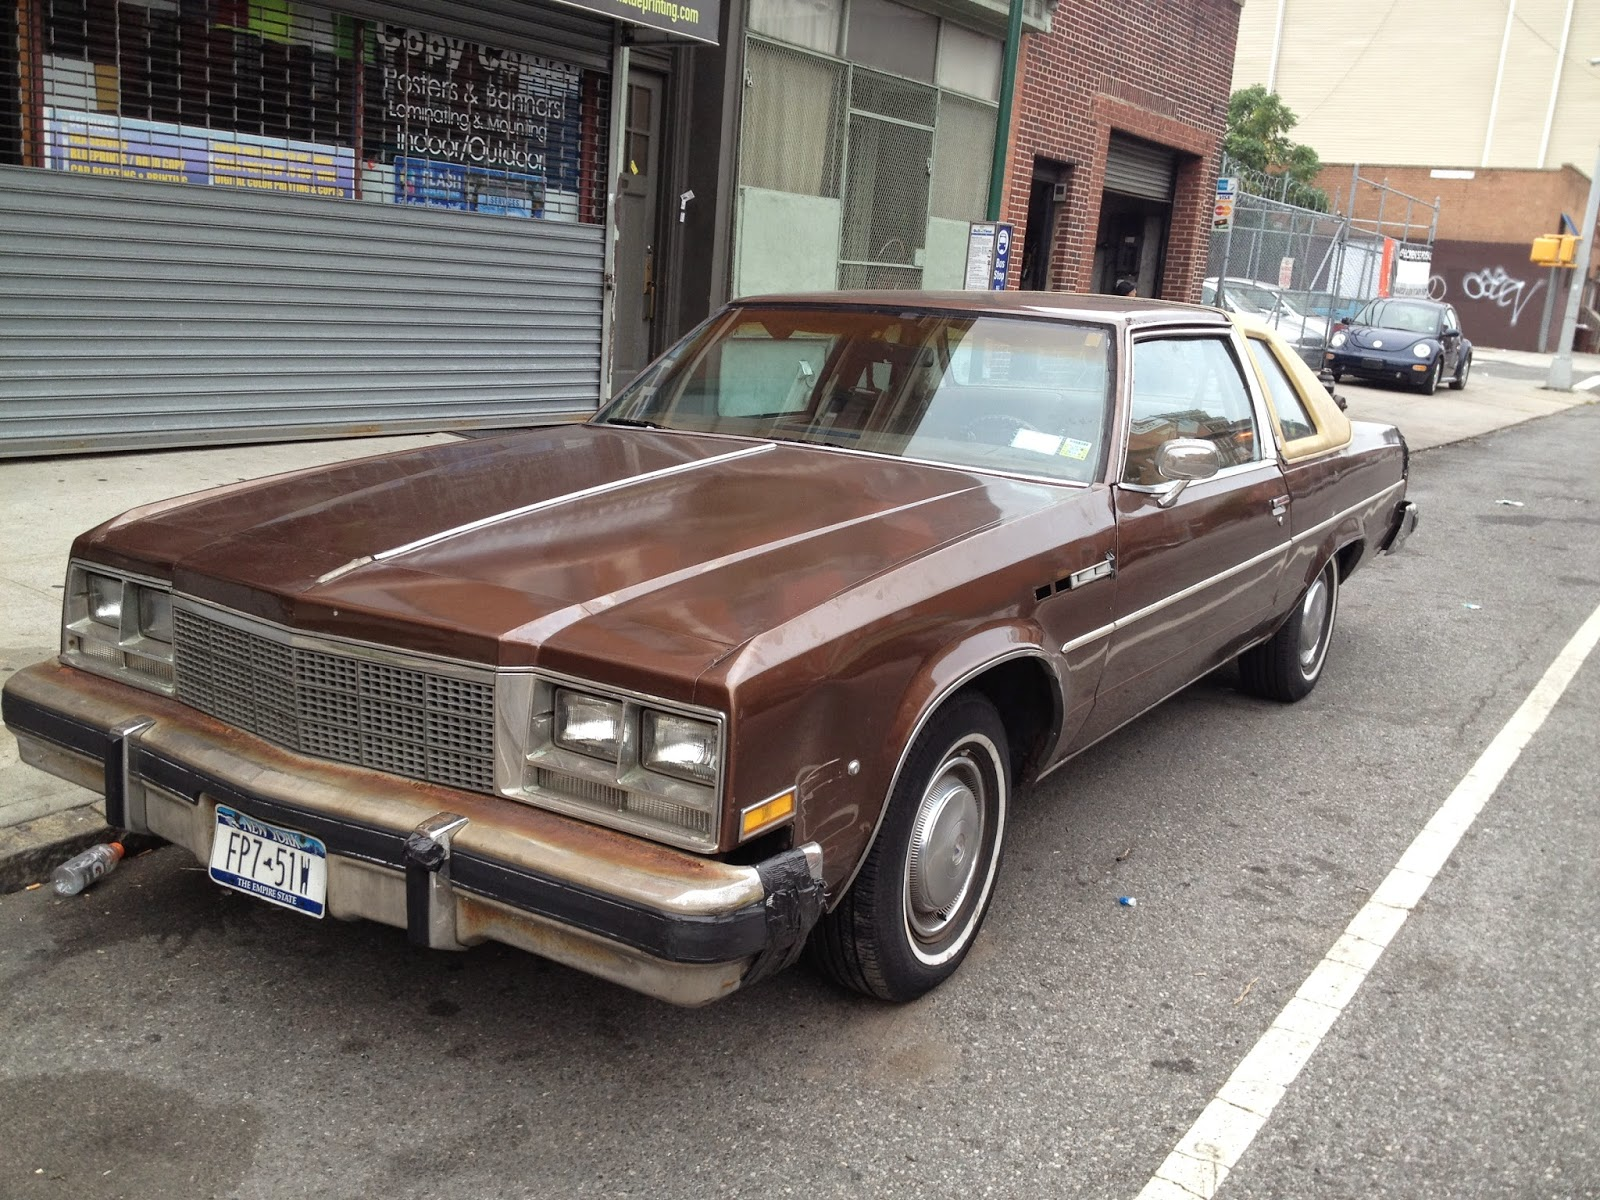 NYC Hoopties - Whips Rides Buckets Junkers and Clunkers: The Very ...